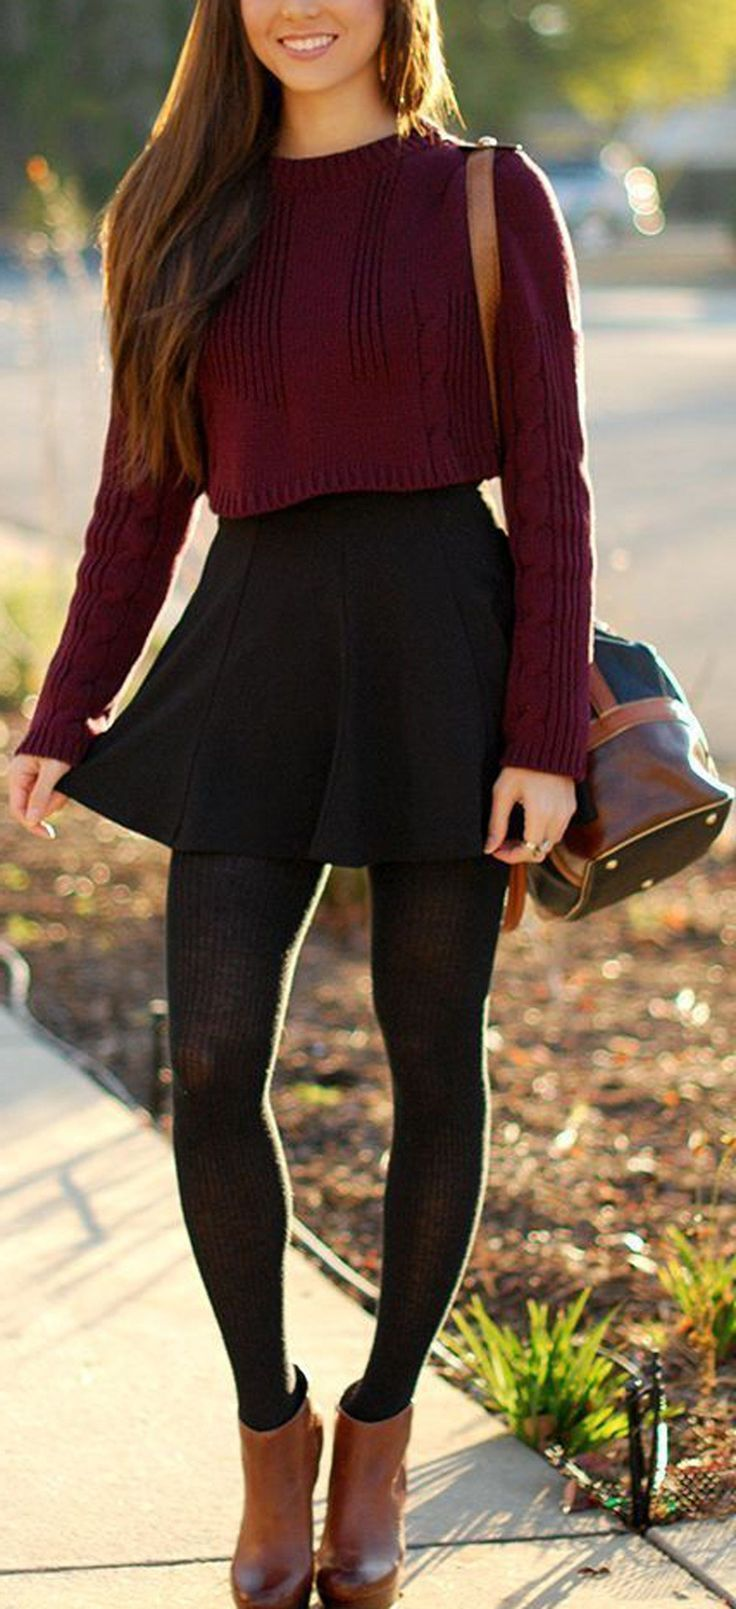 Noble Winter-Outfit-Ideen für Teenager für Teenager-Mädchen Crop Top Skater Skirt St … – Winter outfits – Benjamin Blog